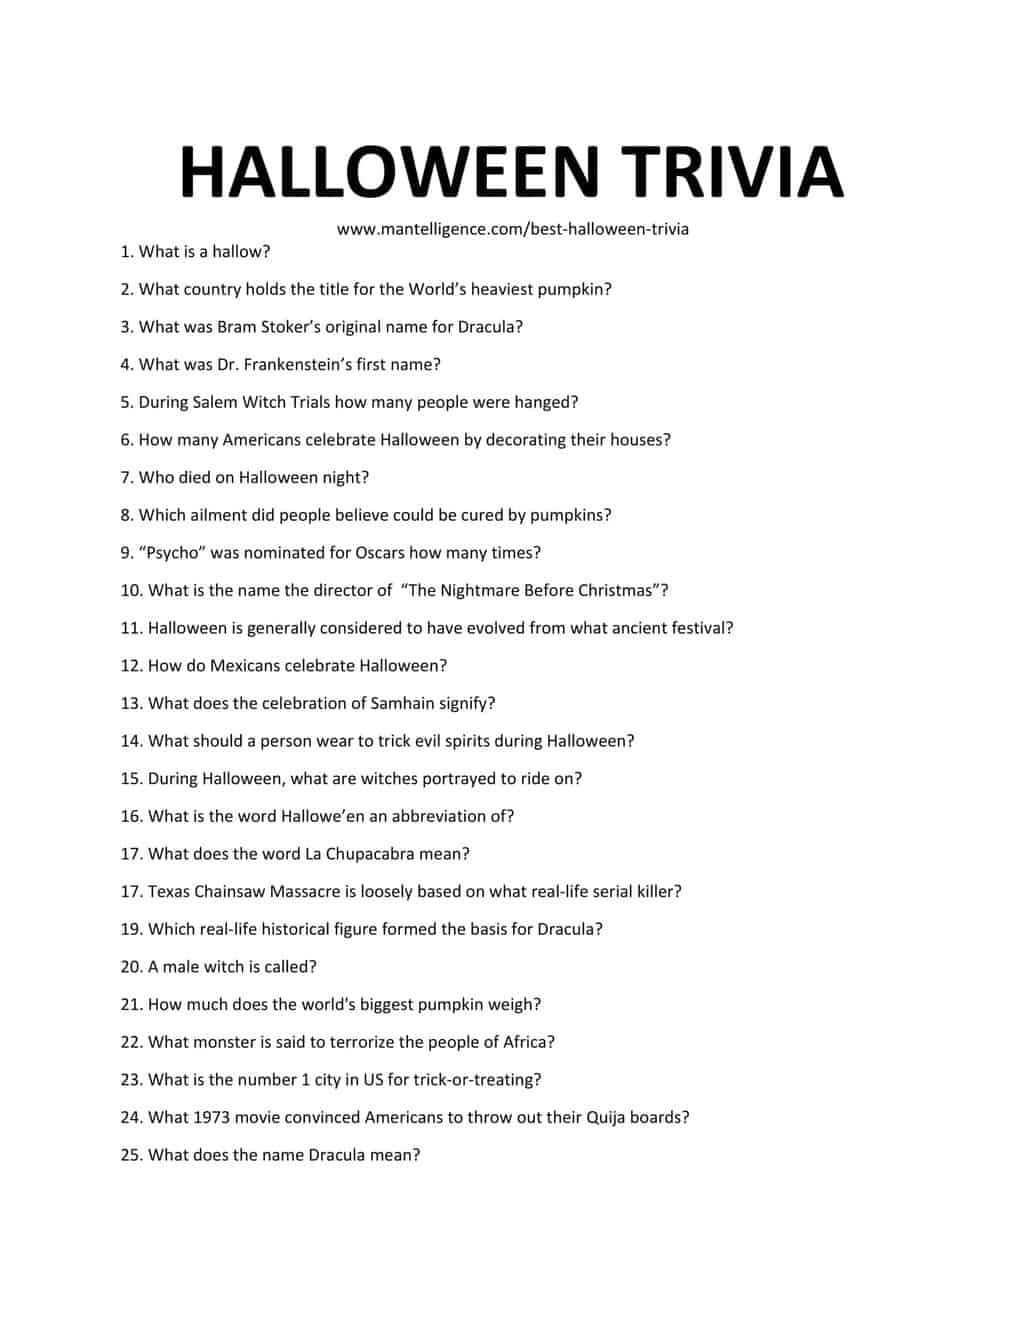 Downloadable List of Halloween Trivia